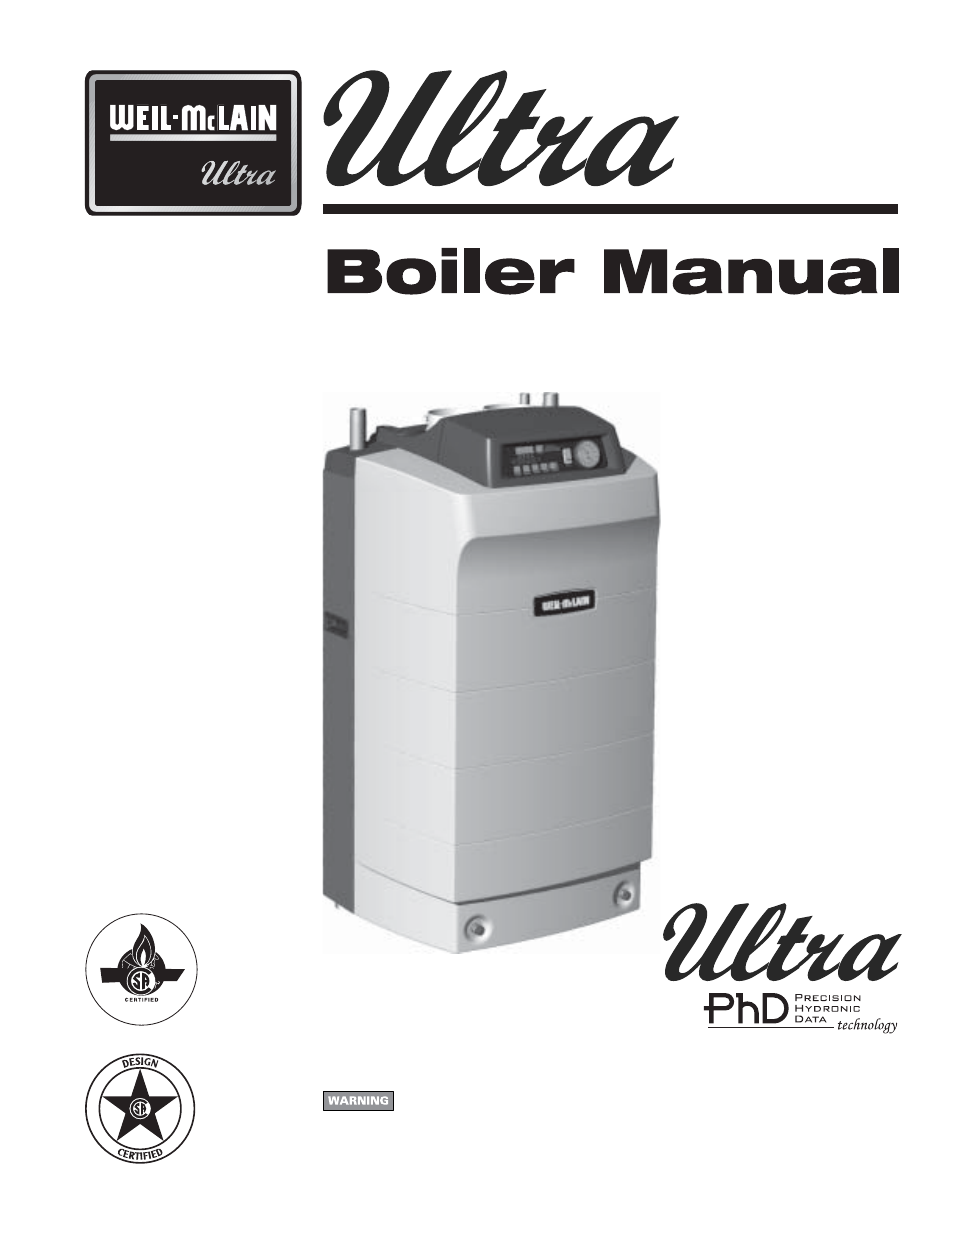 Weil-McLain ULTRA 80 EN User Manual | 44 pages | Also for: -155 EN